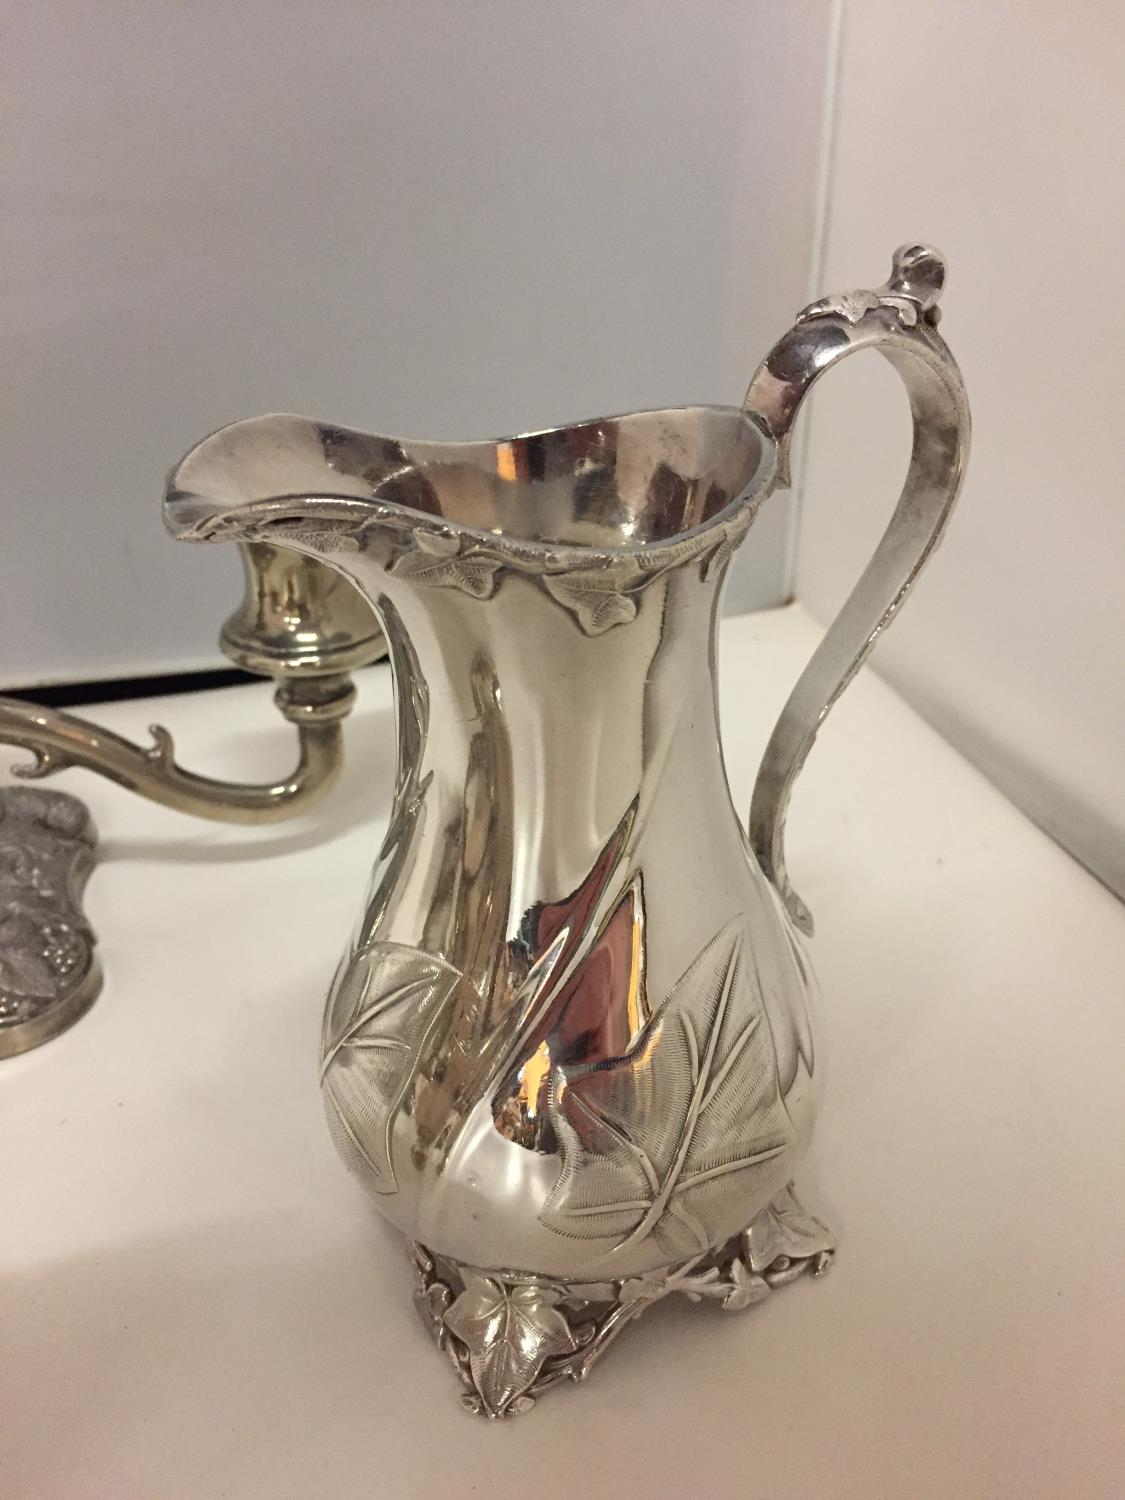 A SELECTION OF SILVER PLATED ITEMS TO INCLUDE A JUG, TWIN HANDLED VESSEL, CANDELABRA ETC - Image 8 of 10